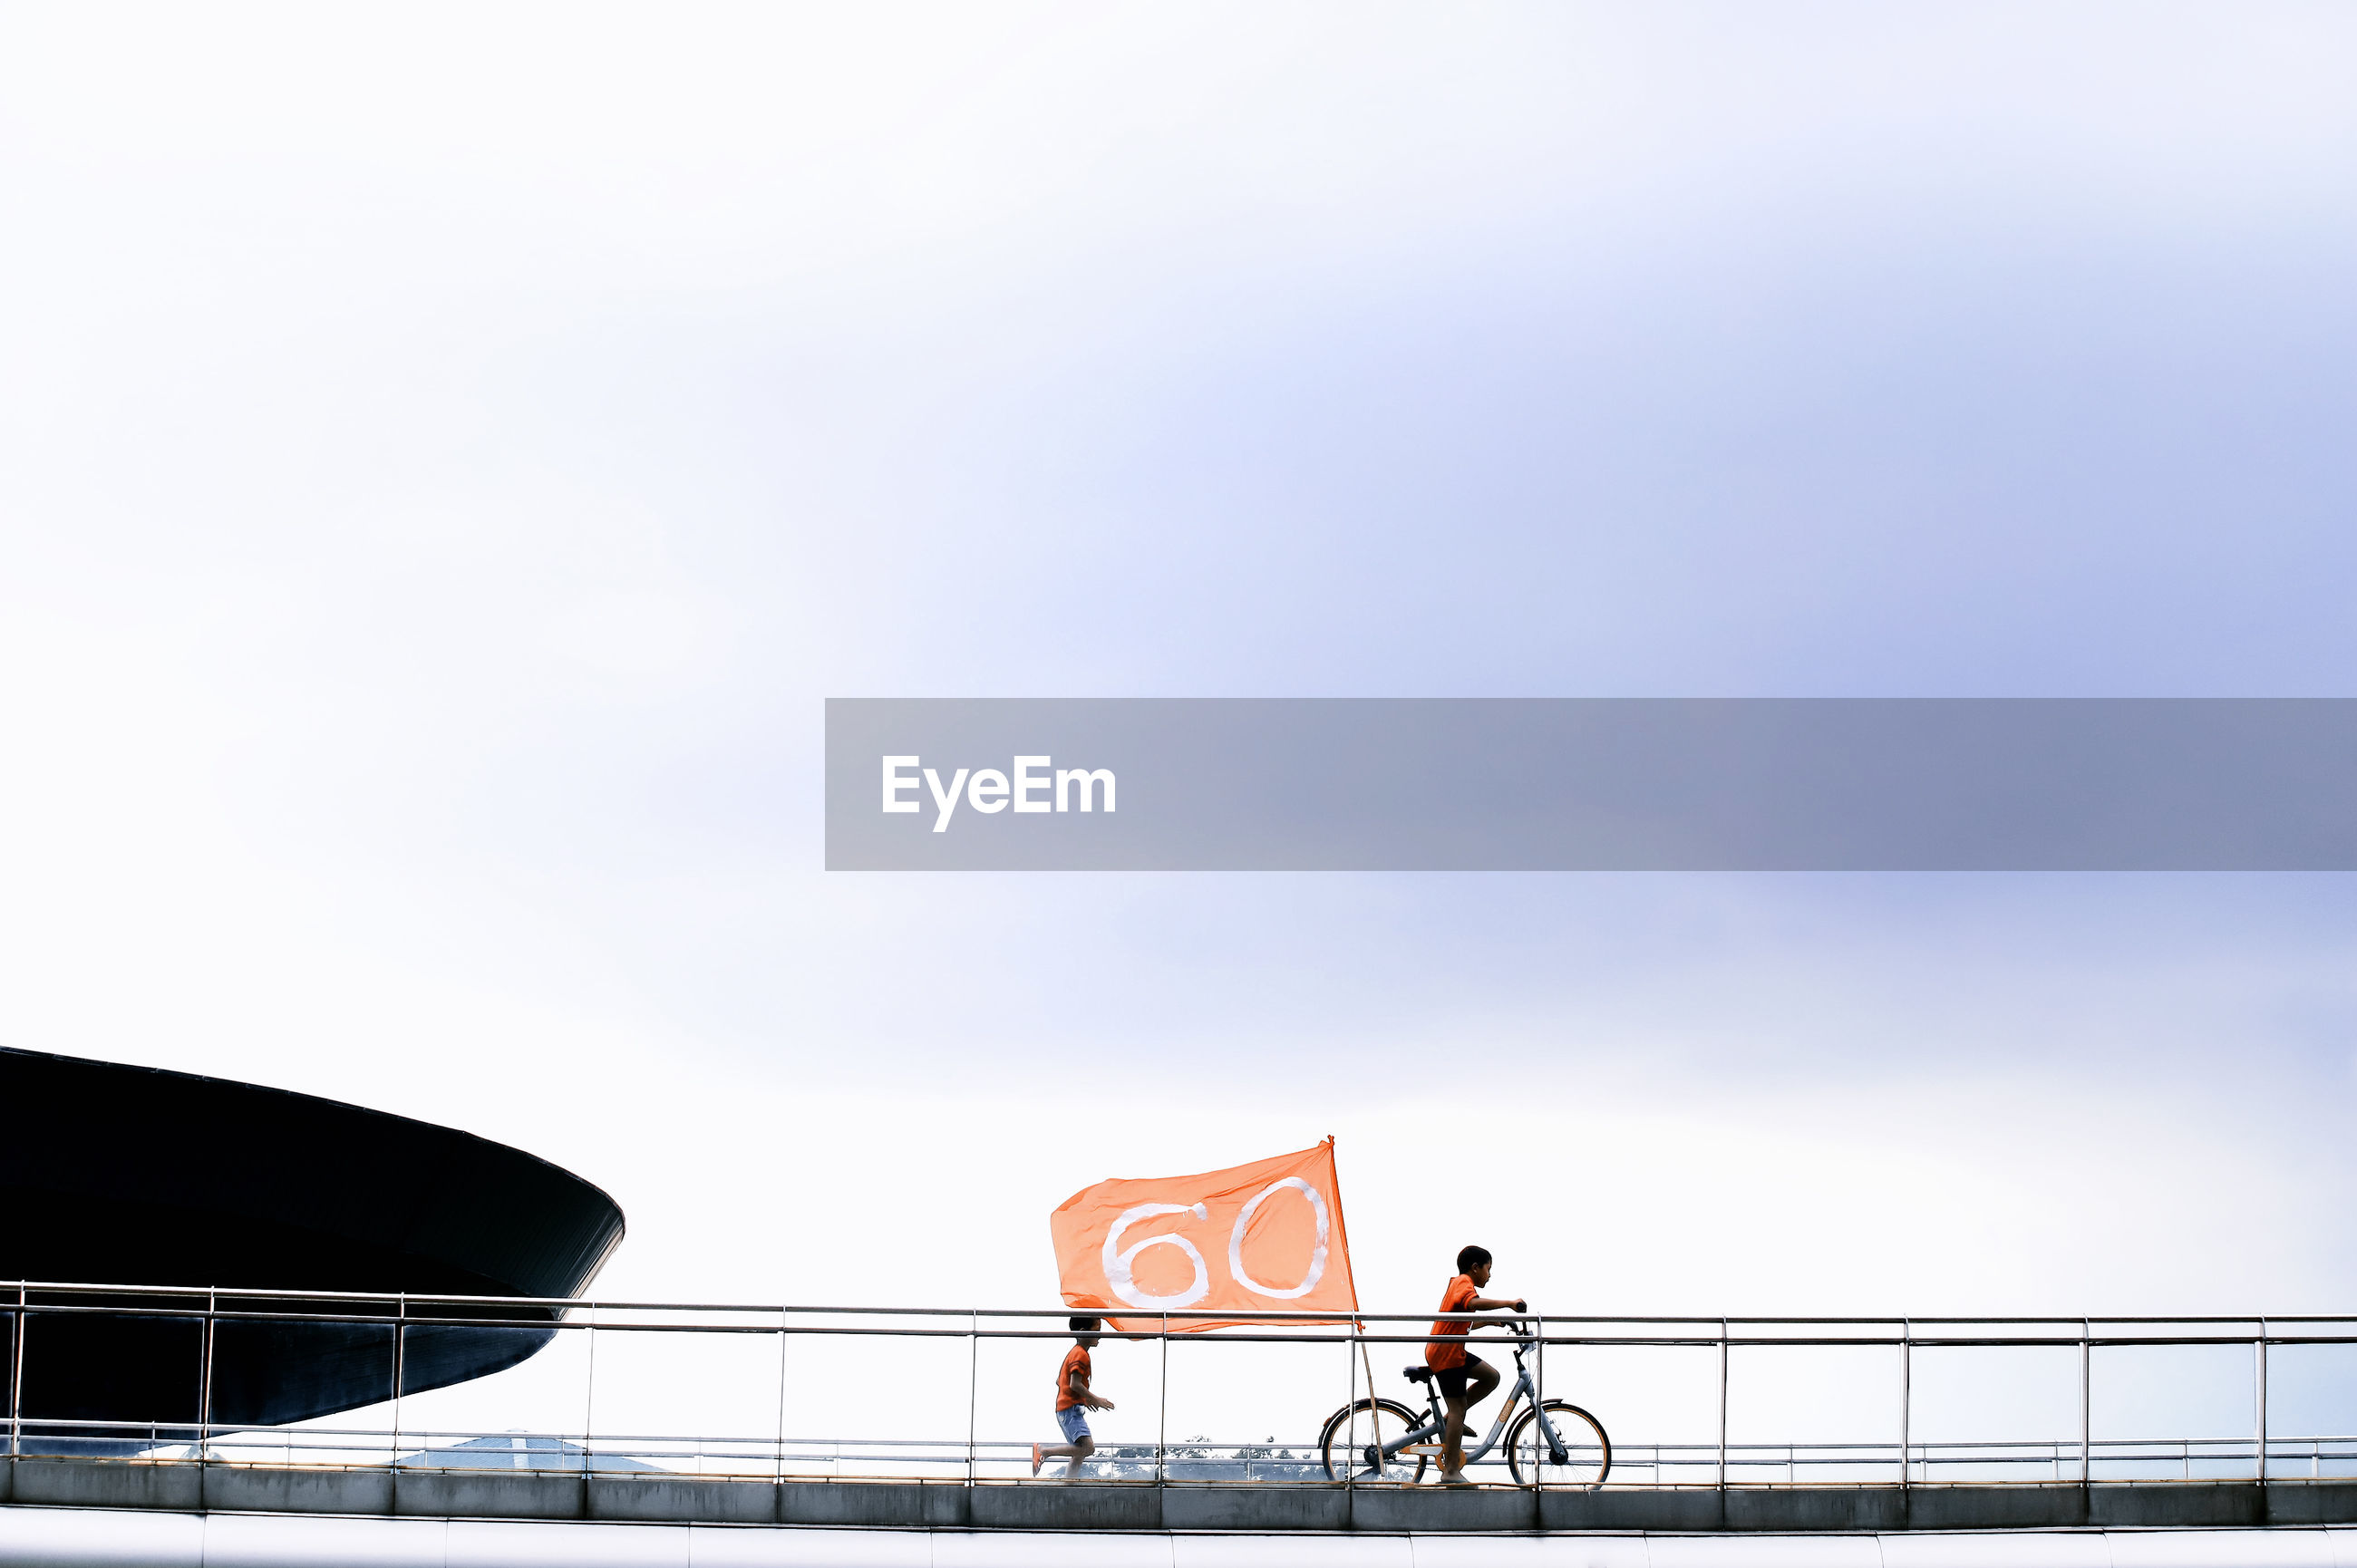 Boys with bicycle on footbridge by railing and flag against sky